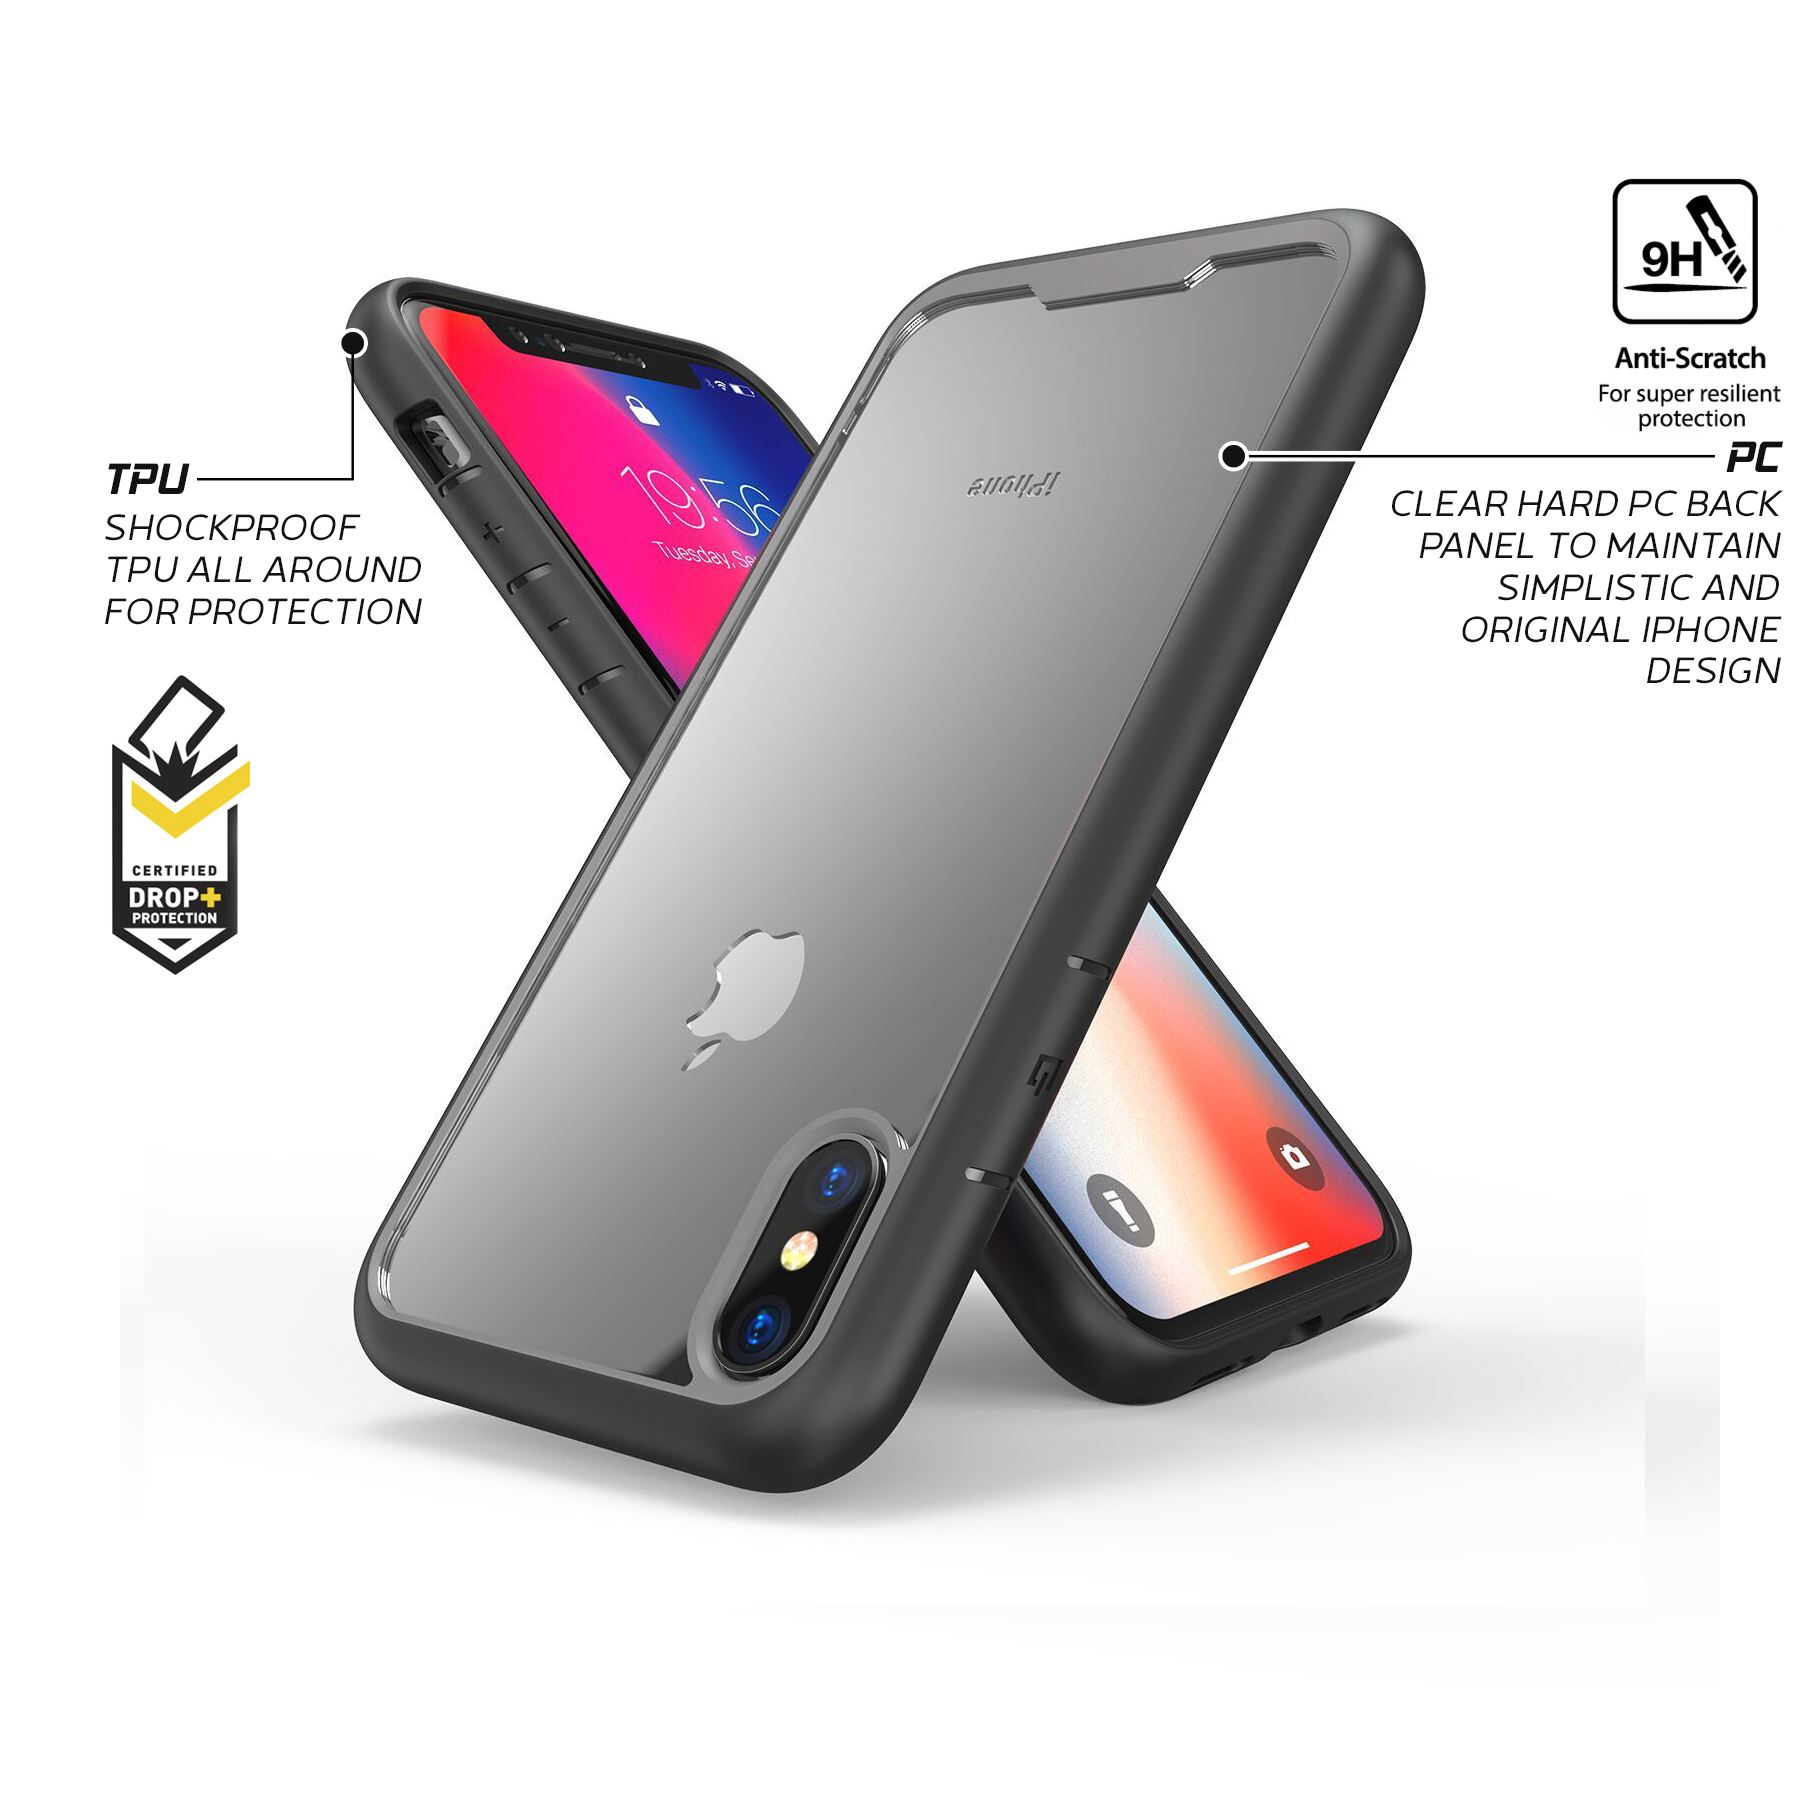 thumbnail 20 - For Apple iPhone XR Xs Max X 8 7 Plus 6 Se 2020 Case Cover Clear Shockproof Thin